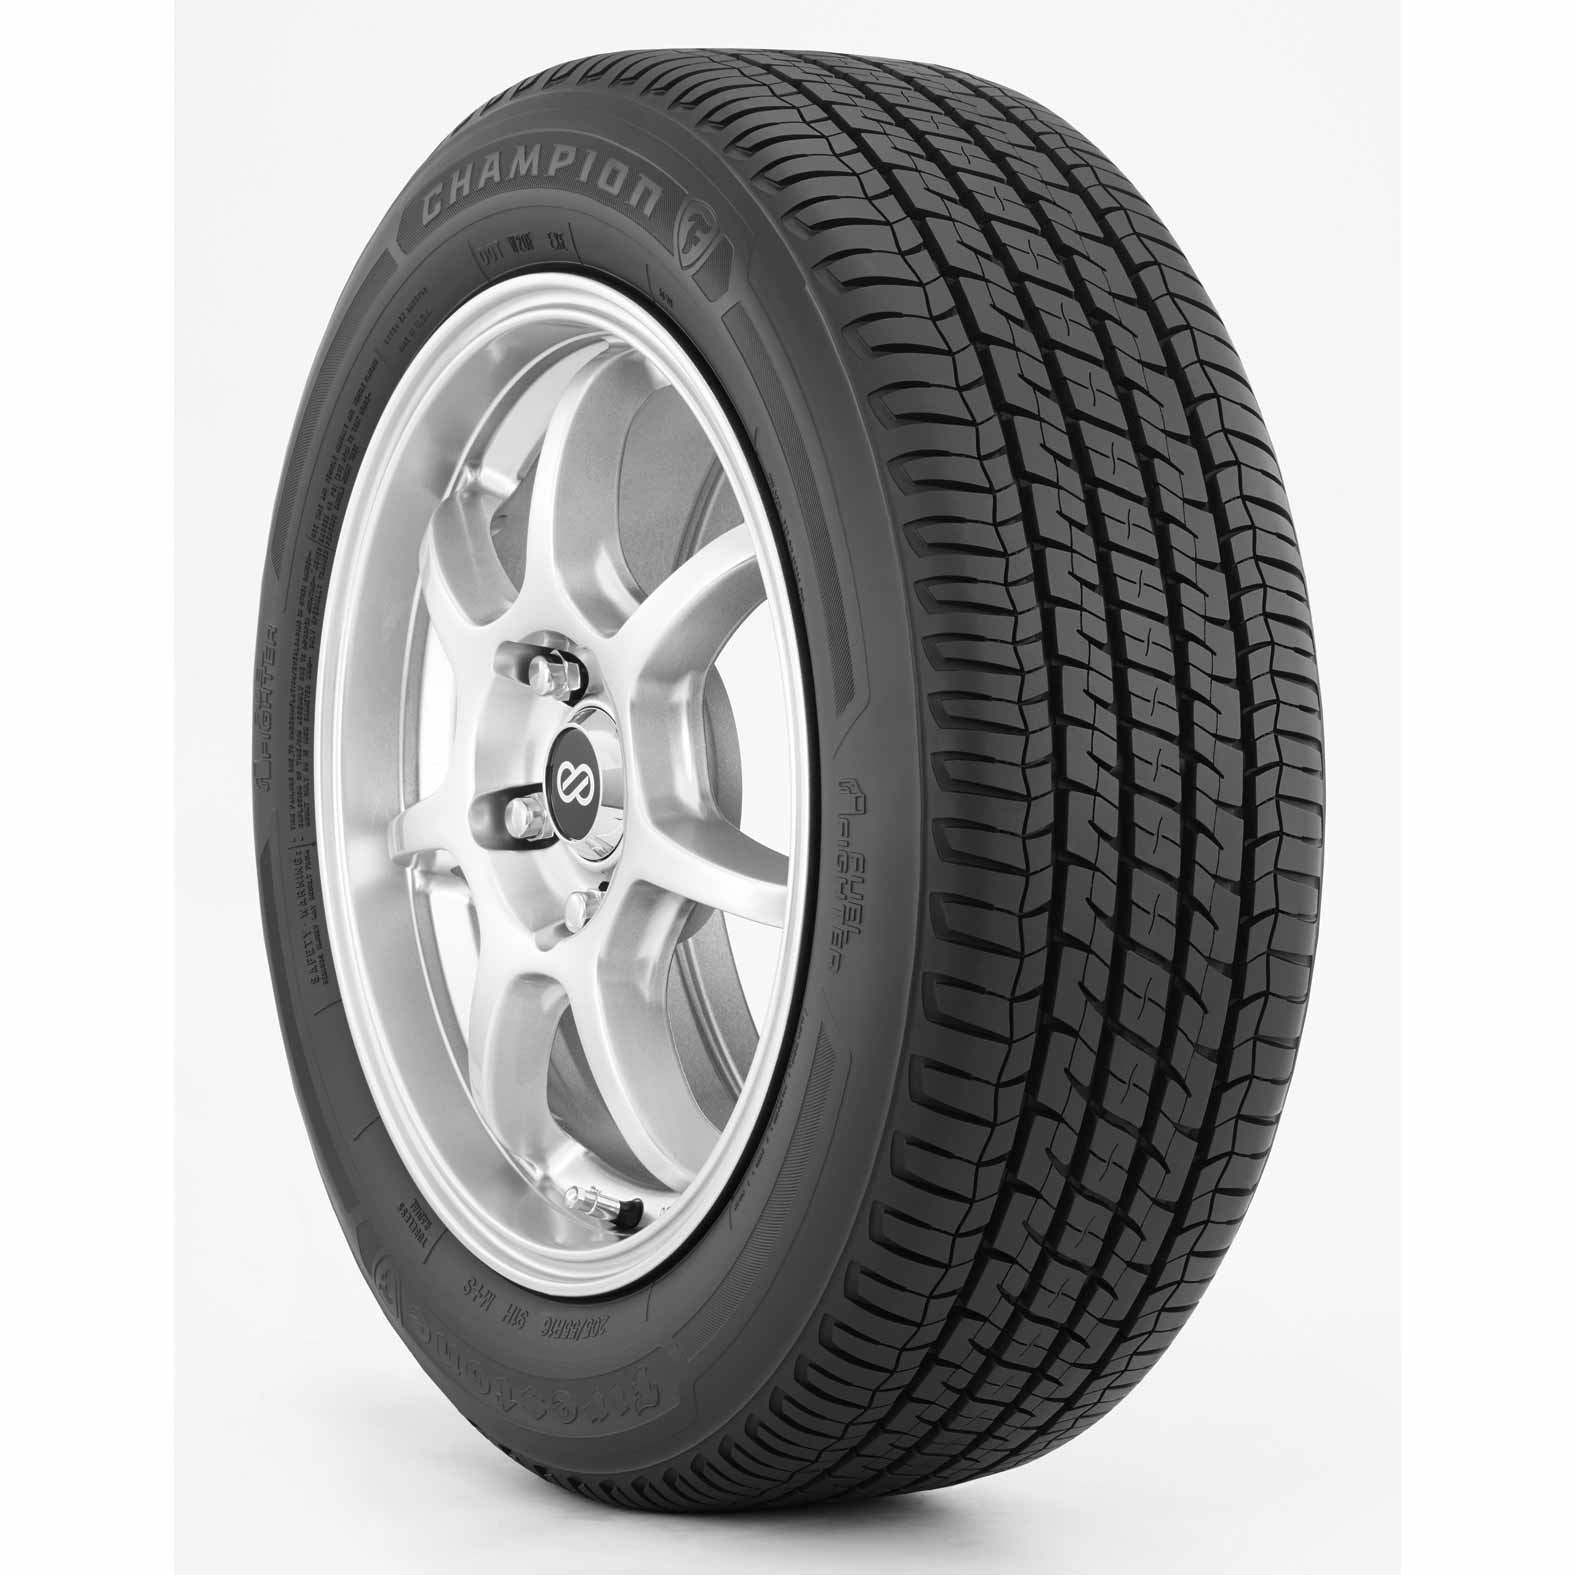 Firestone Champion Fuel Fighter tire - angle